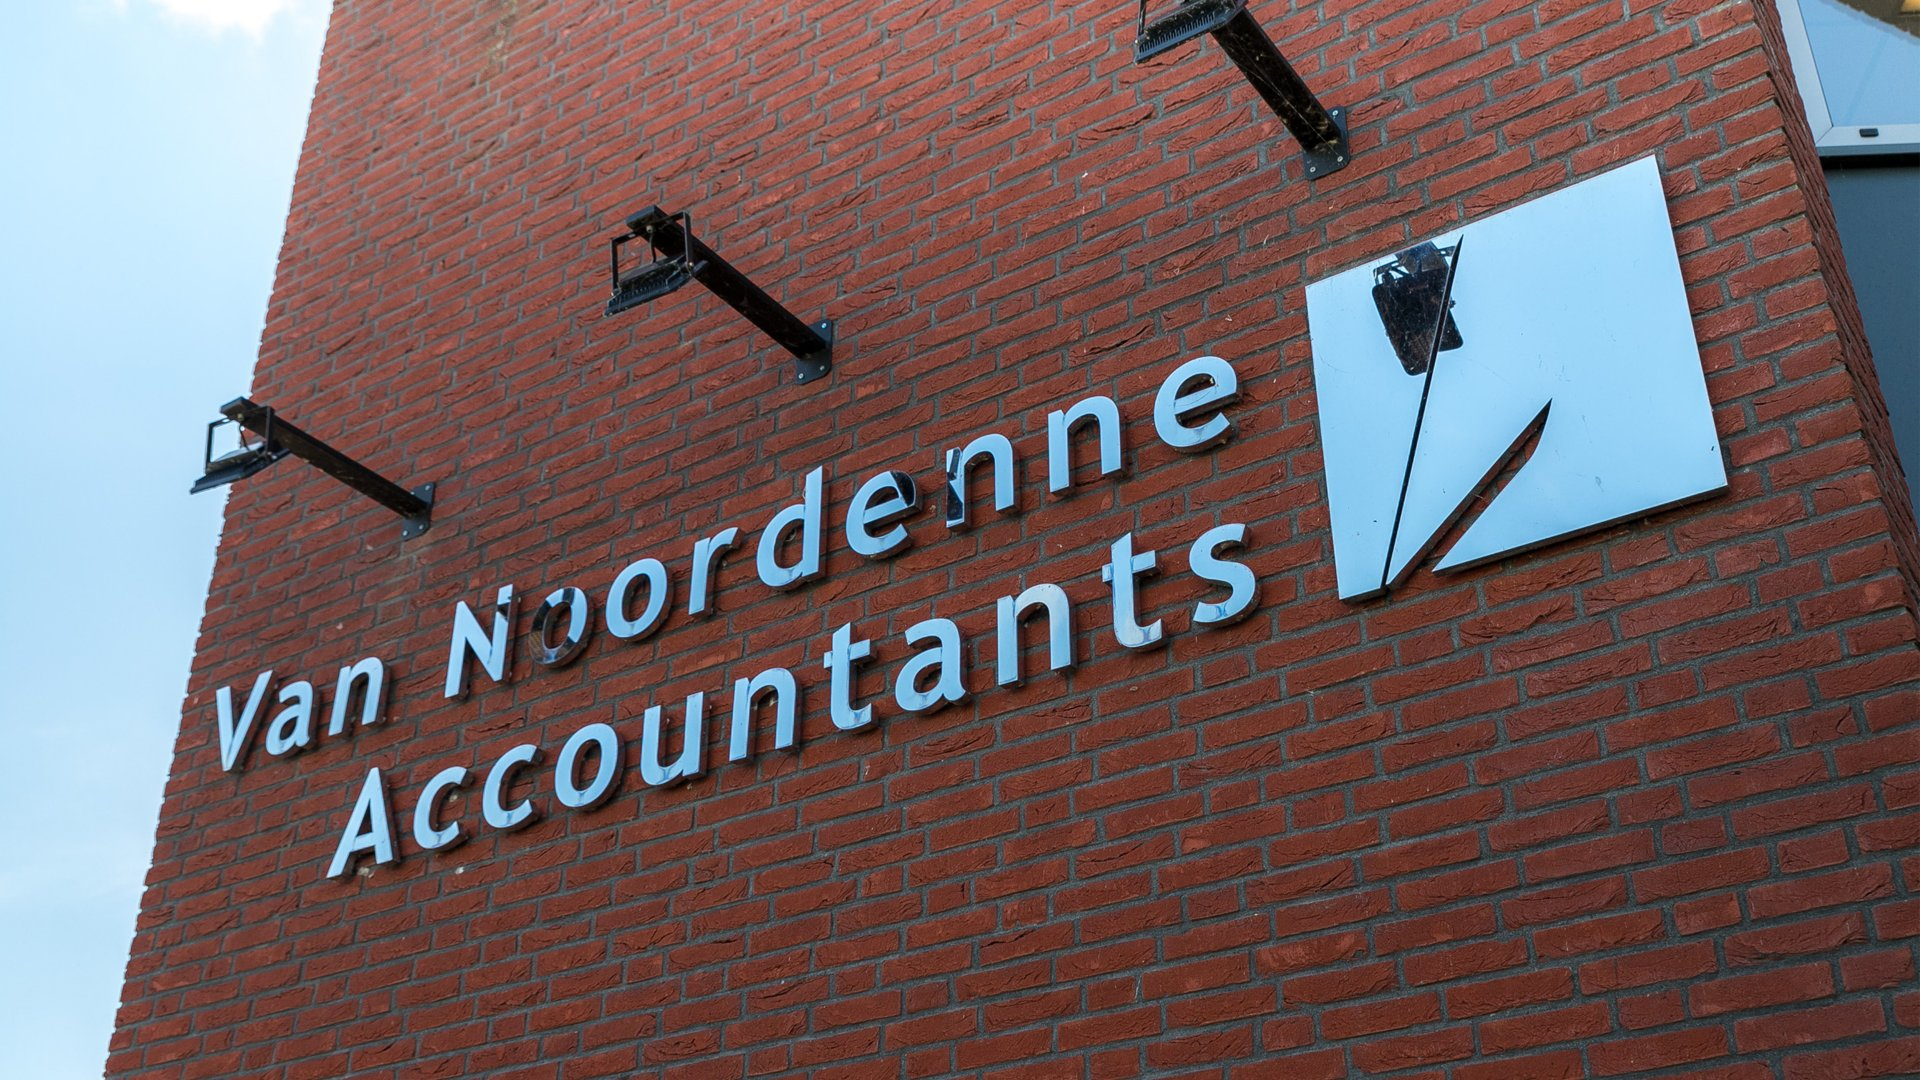 Van Noordenne Accountants acts in the role of an independent, specialist partner addressing the needs and requirements of your business.